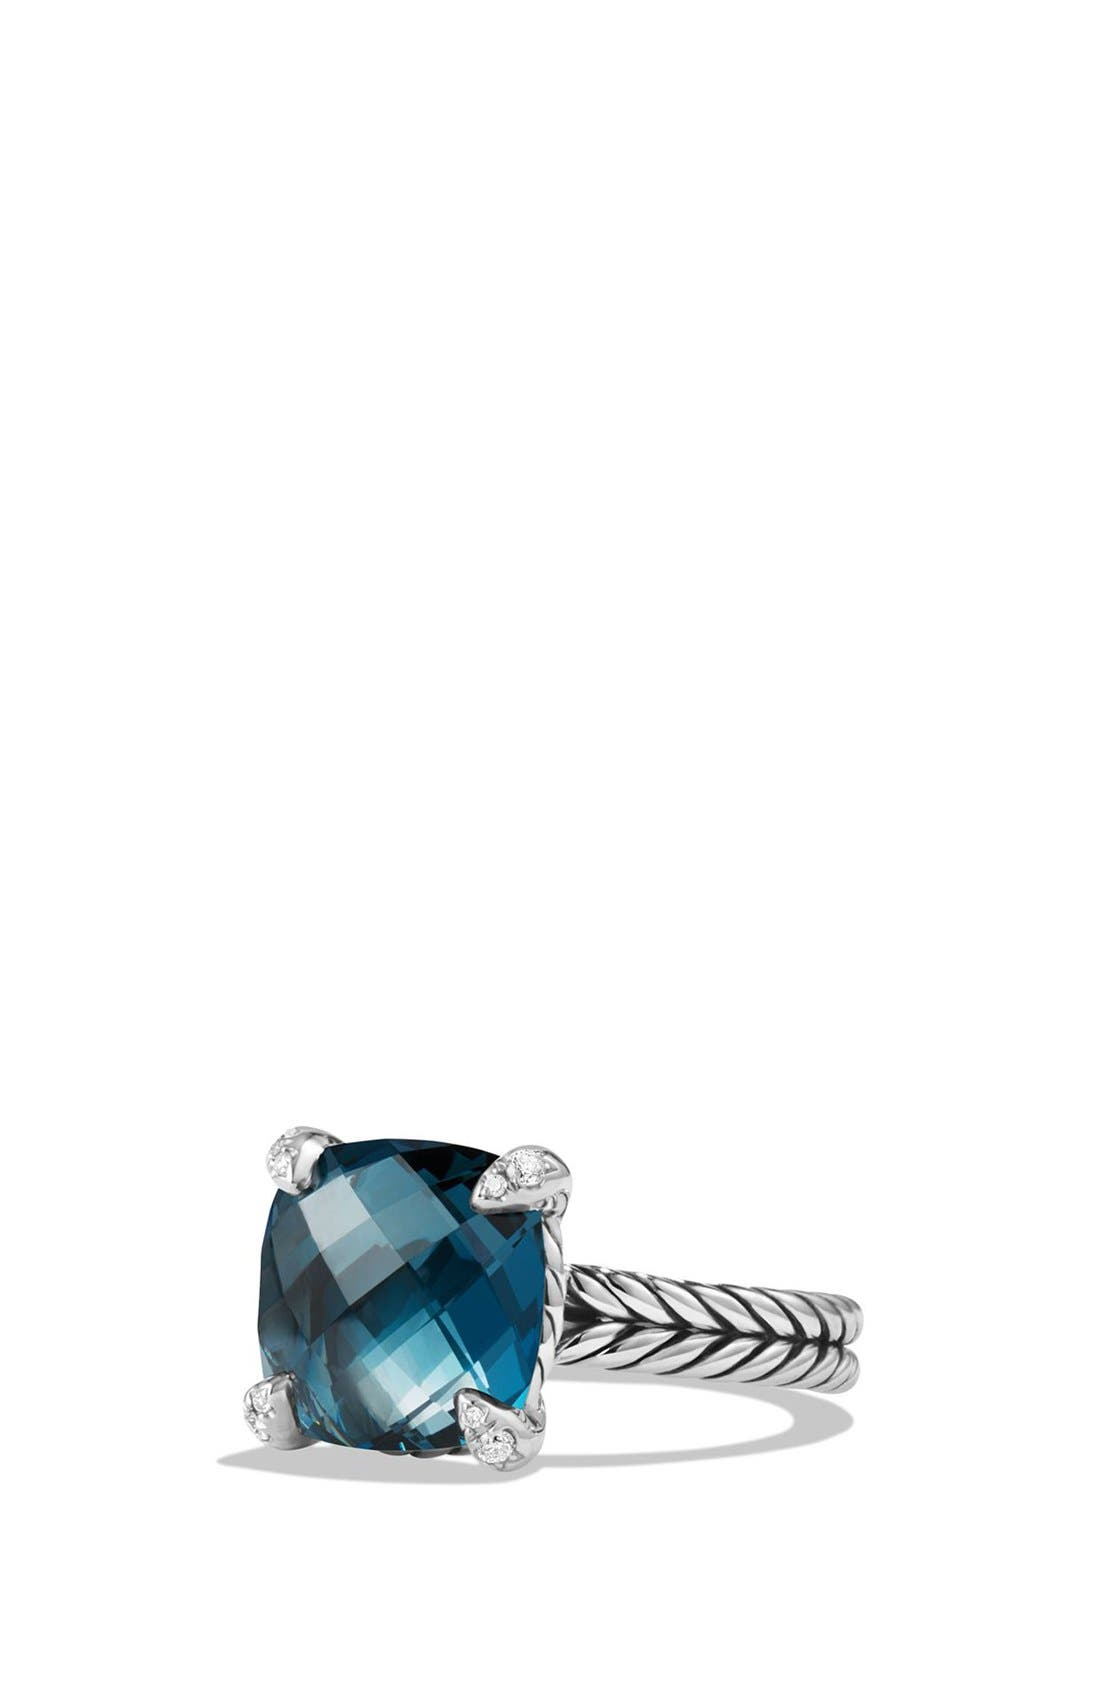 DAVID YURMAN,                             'Châtelaine' Ring with Semiprecious Stone and Diamonds,                             Main thumbnail 1, color,                             SILVER/ HAMPTON BLUE TOPAZ